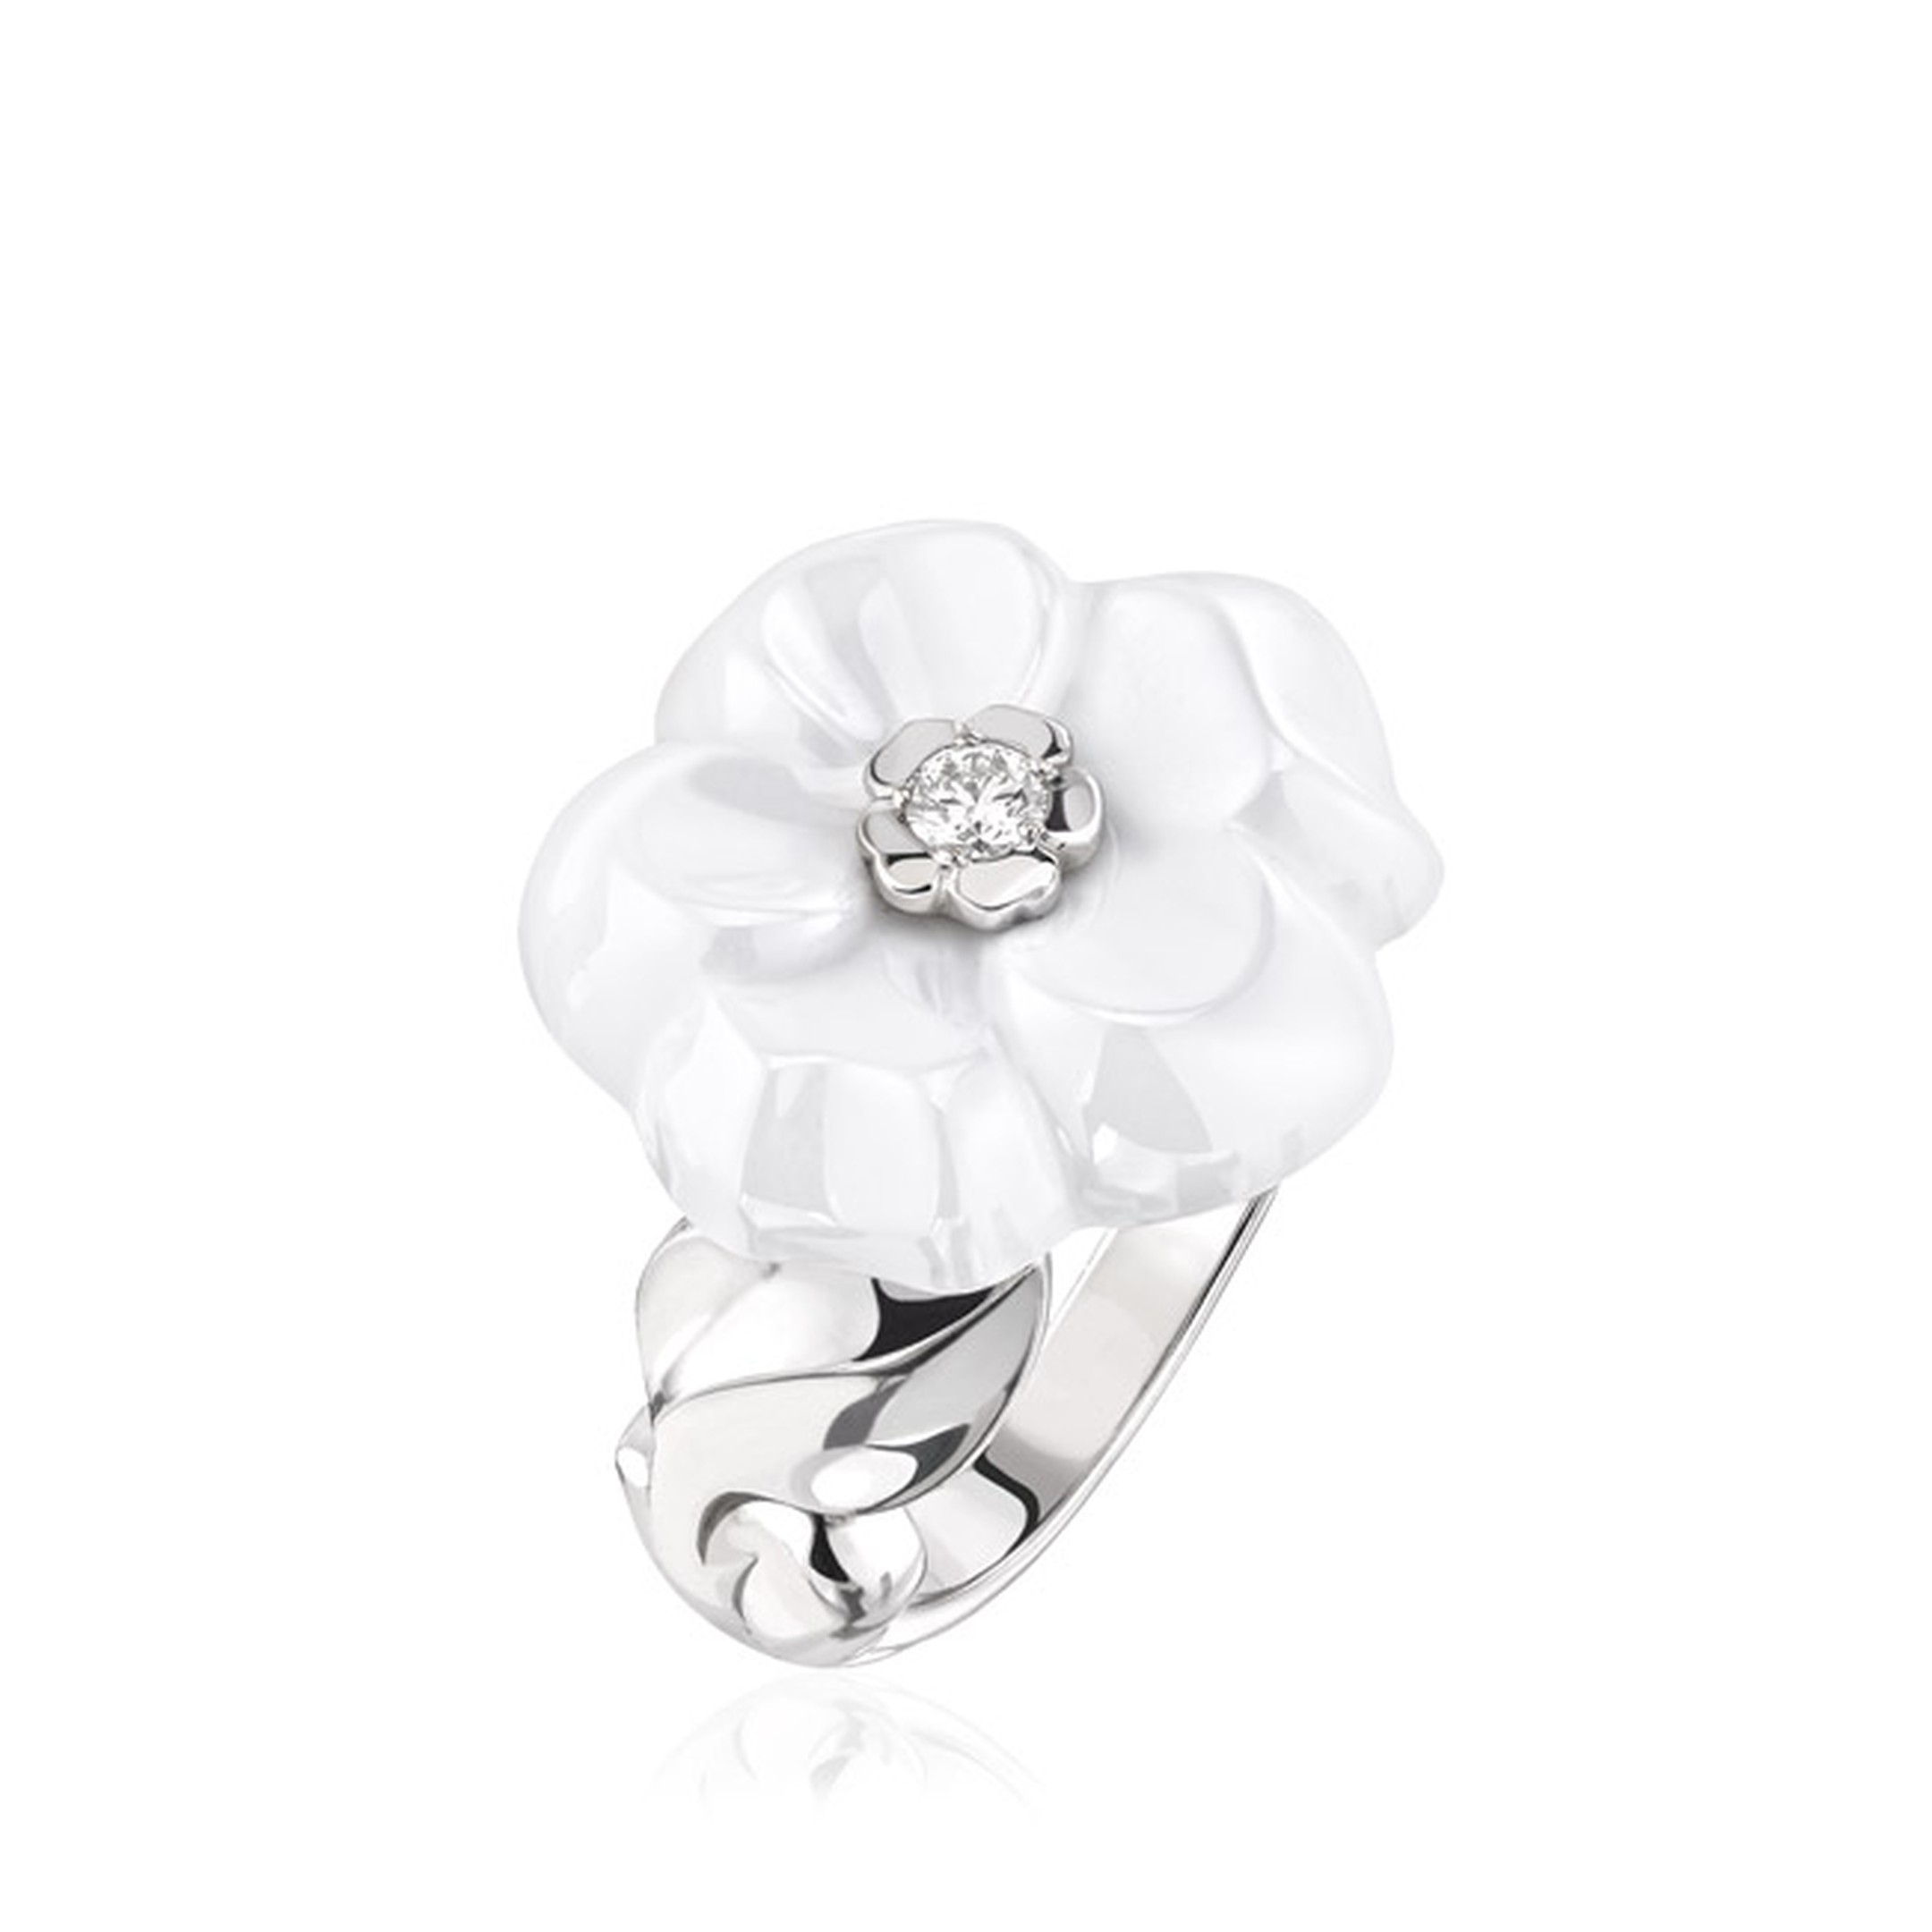 Chanel Camélia Galbé small white ceramic ring with a brilliant-cut white diamond at its heart, set on a twisted white gold band (£2,850).